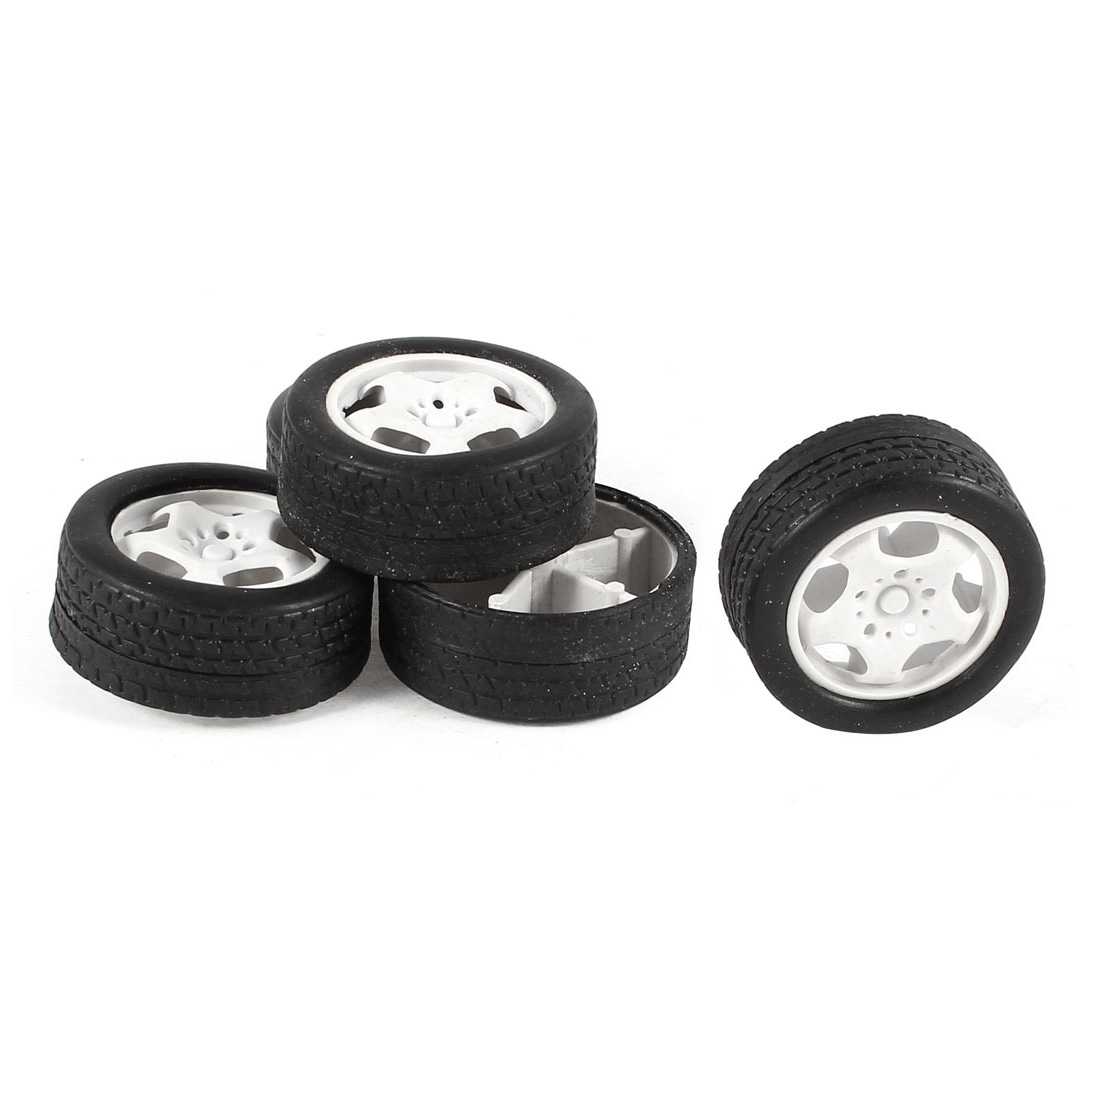 5 Pcs 34mm Dia Rubber Roll Plastic Spoke Car Auto Model Toys Wheels